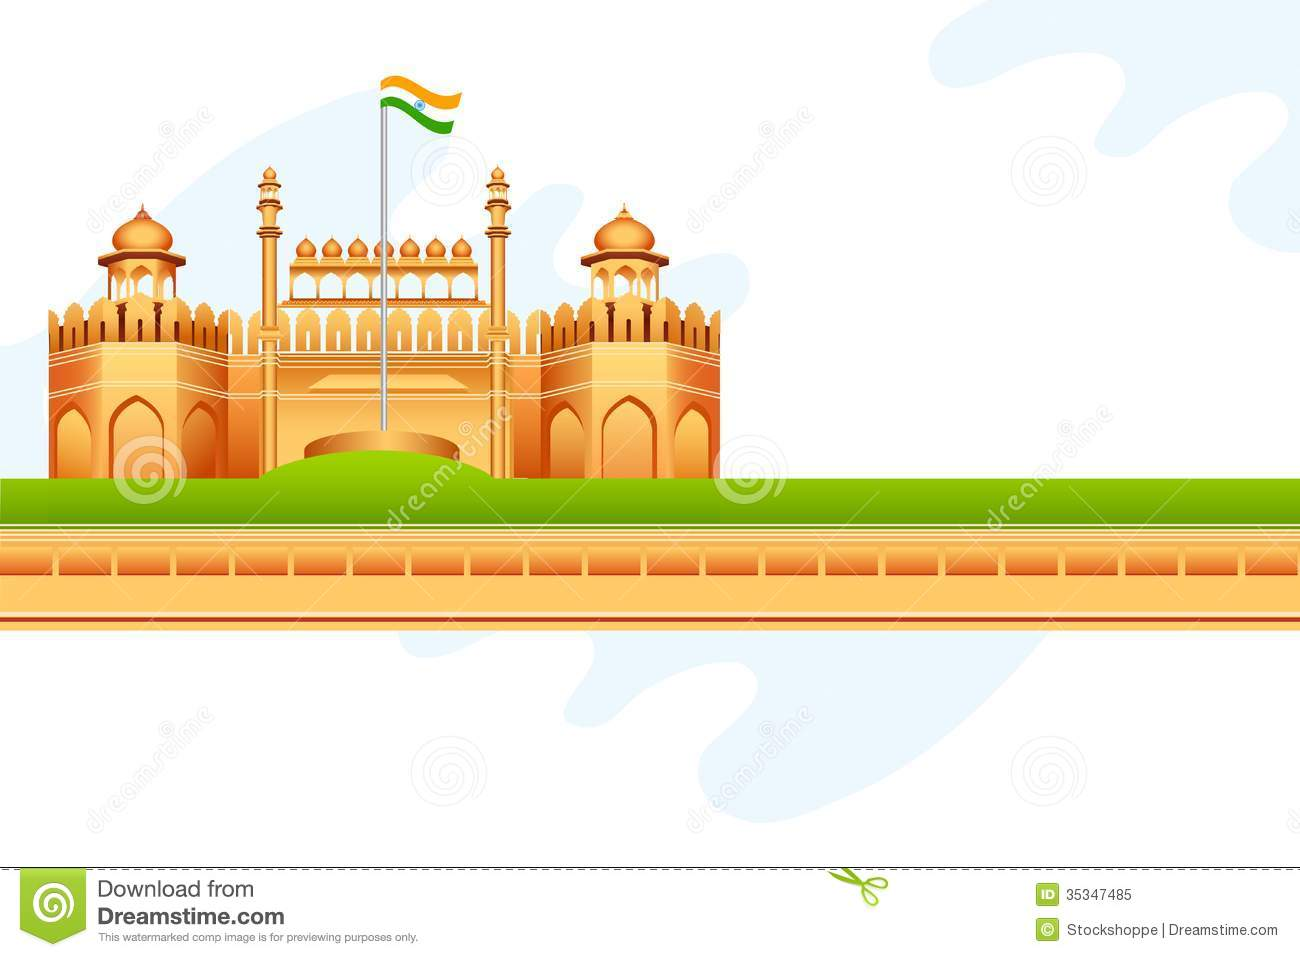 Red fort clip art.